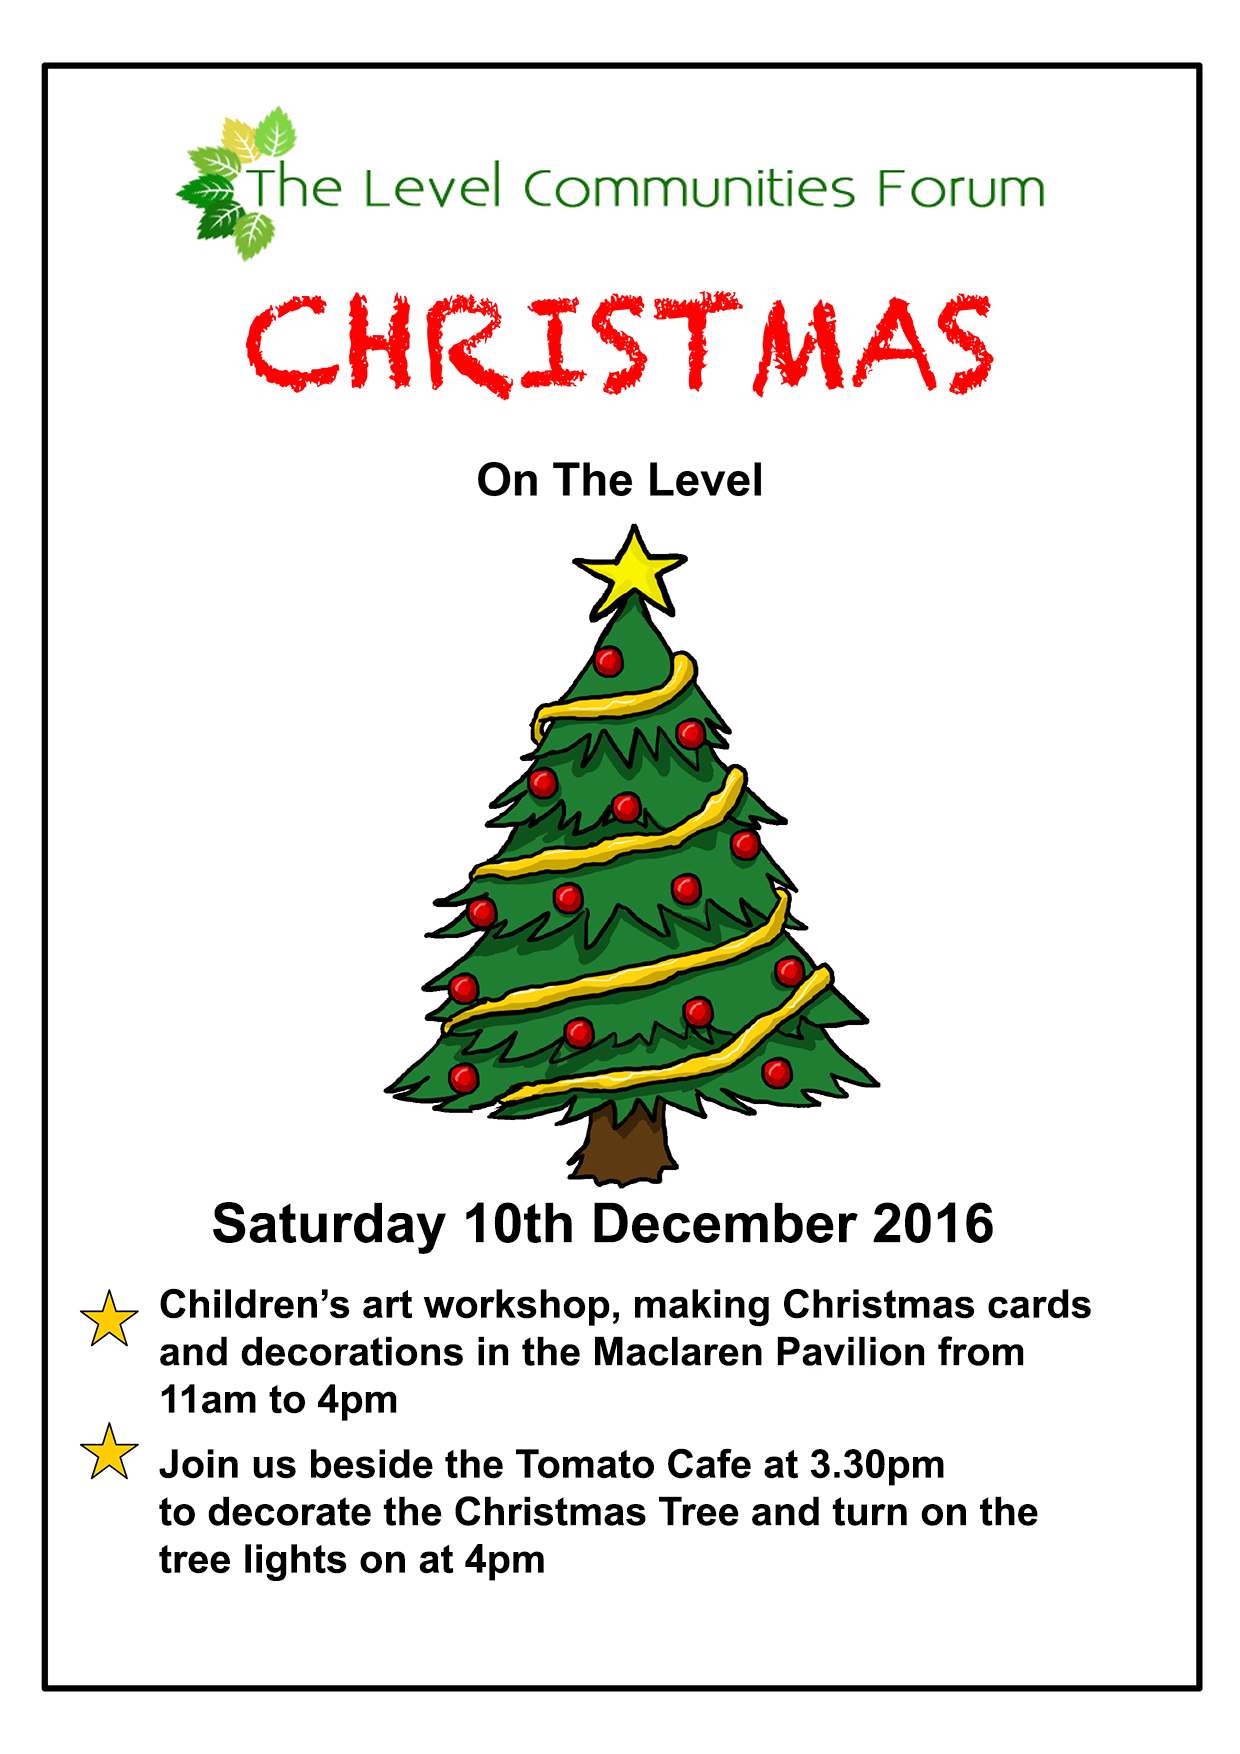 Christmas on the Level 2016